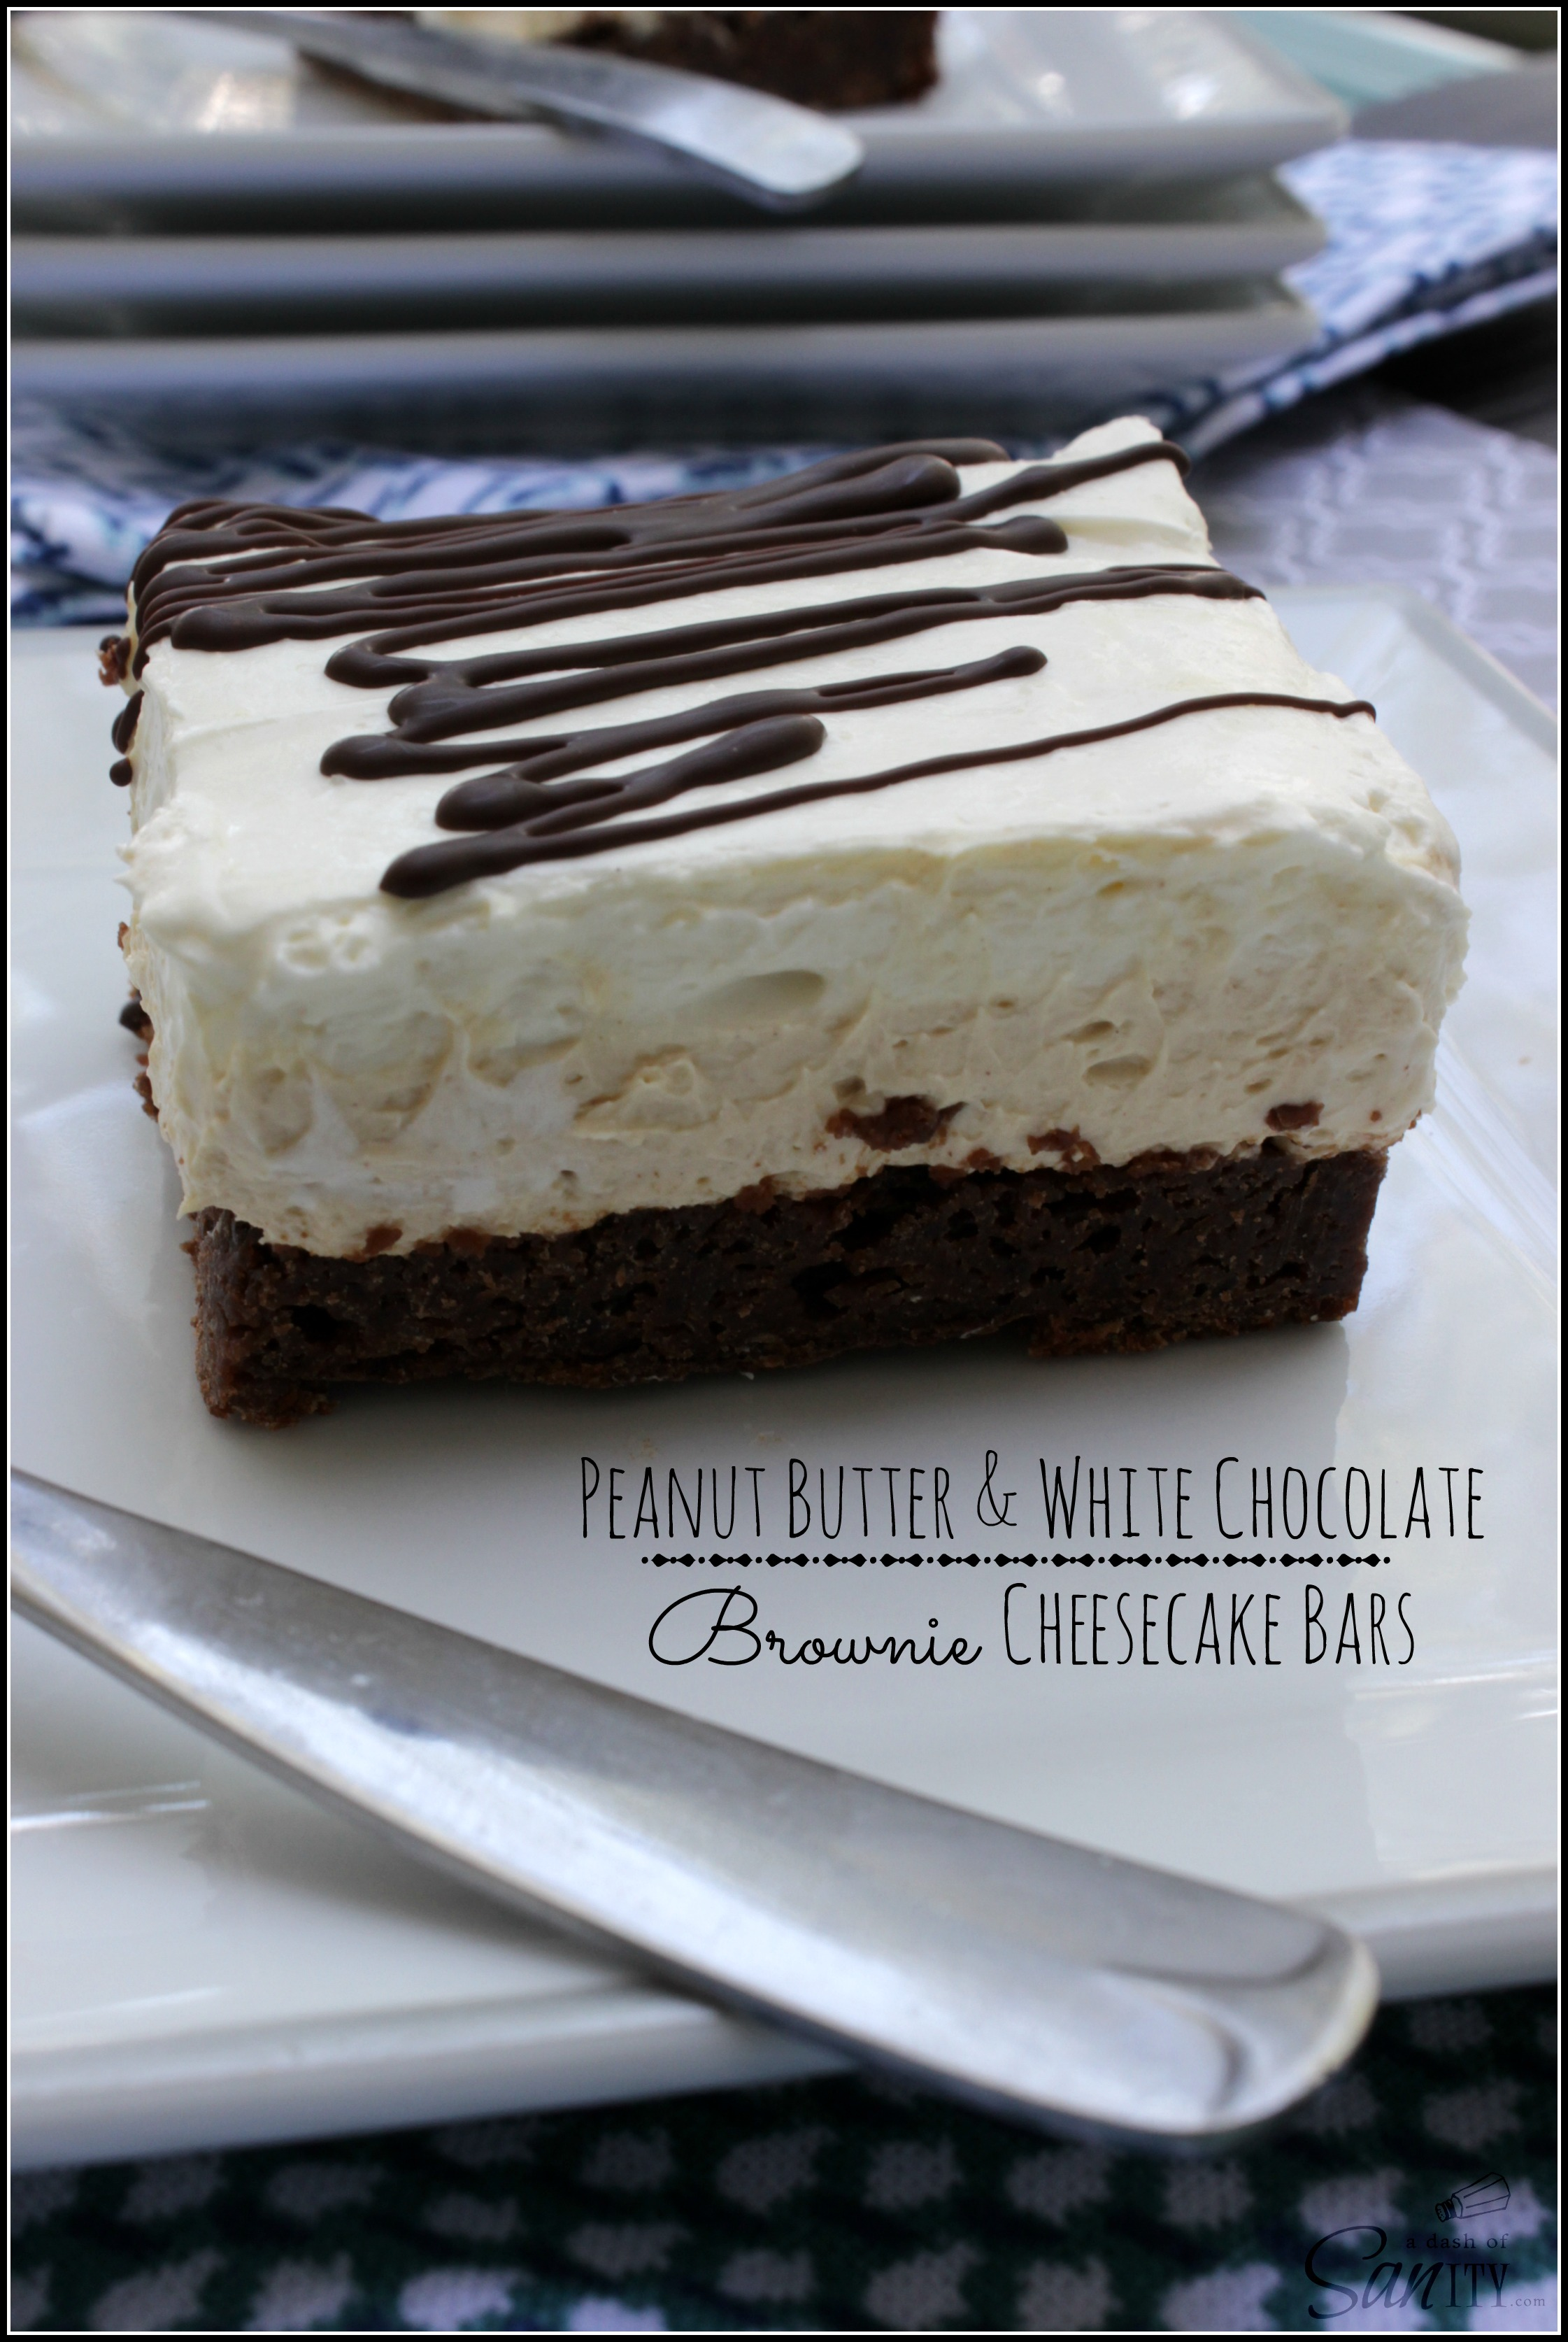 Peanut Butter and White Chocolate Brownie Cheesecake Bars